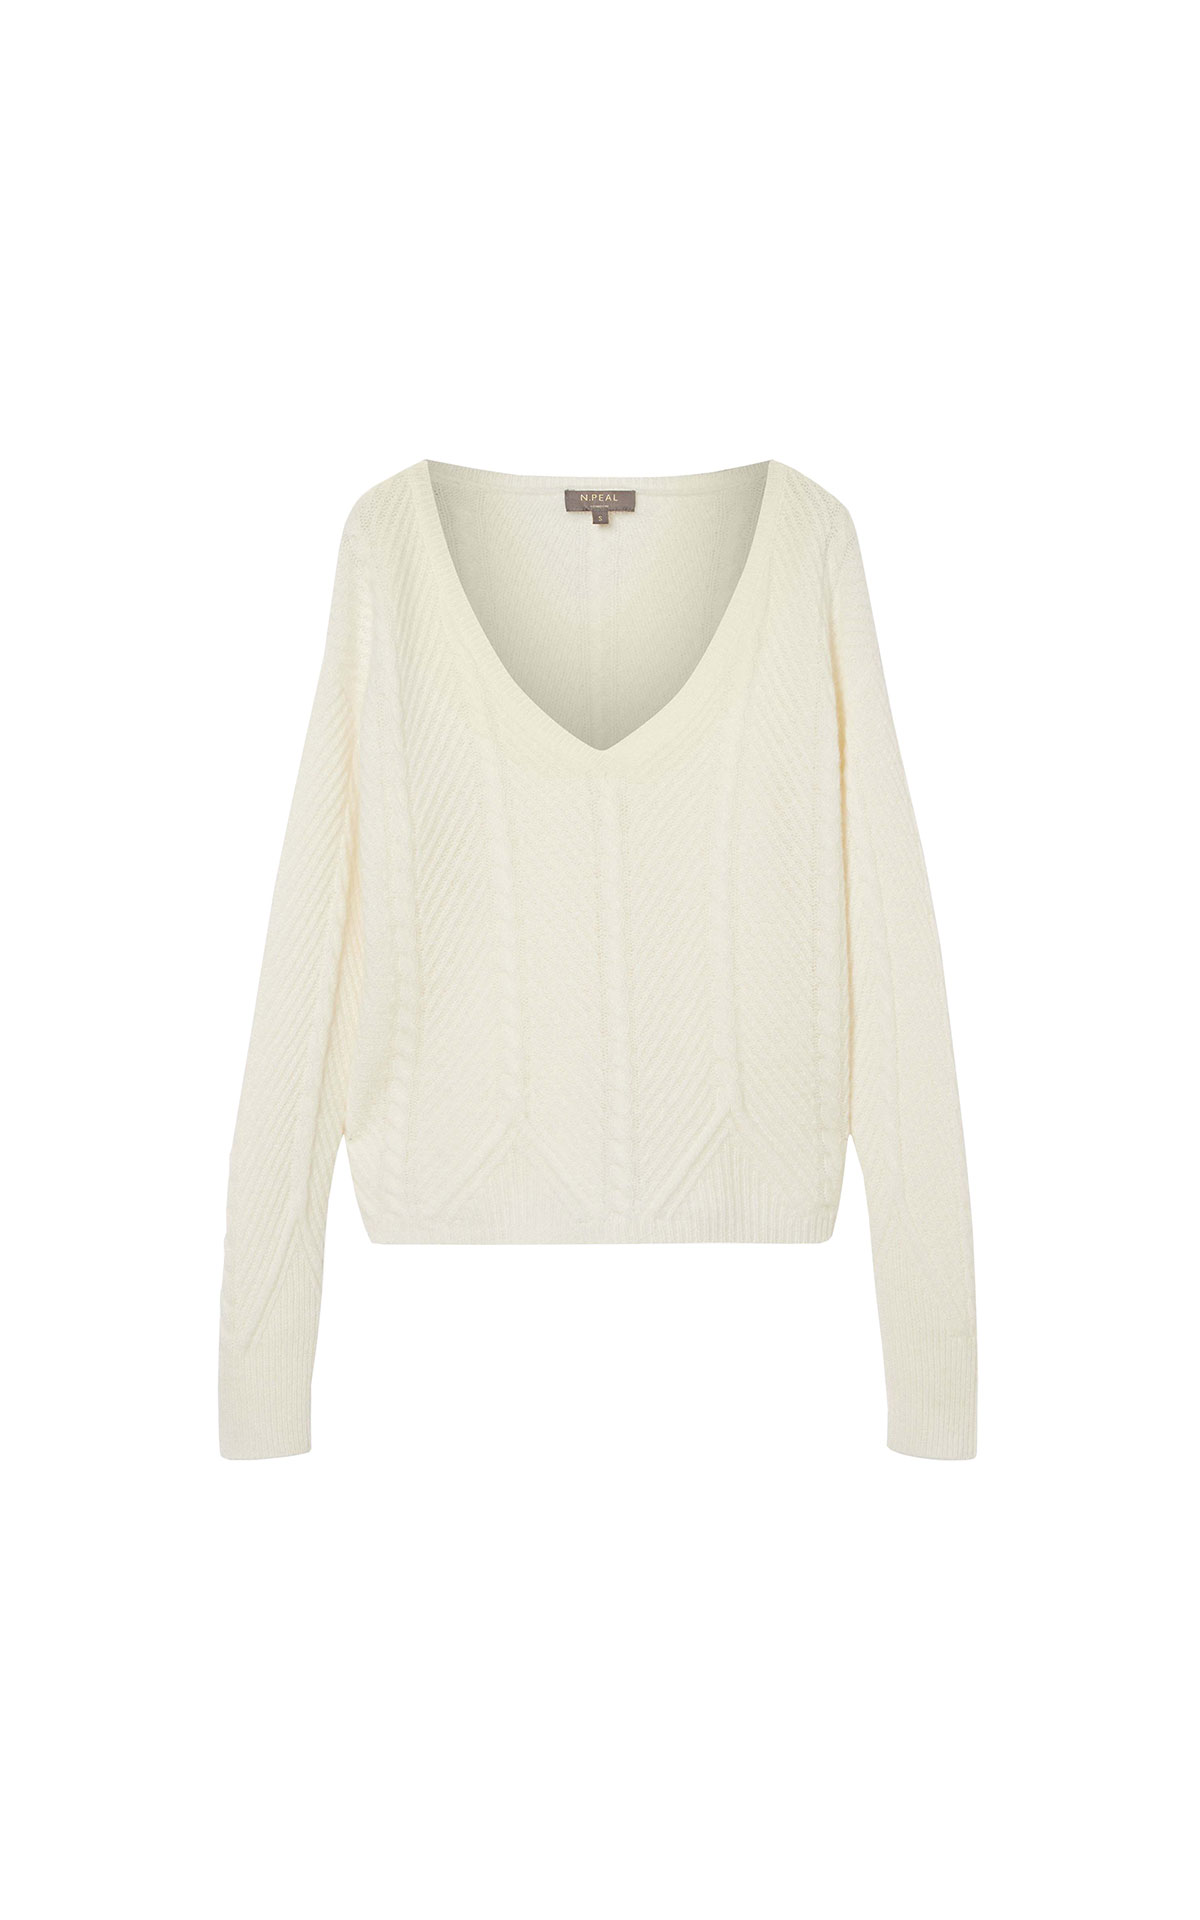 N.Peal Ladies cropped jumper from Bicester Village